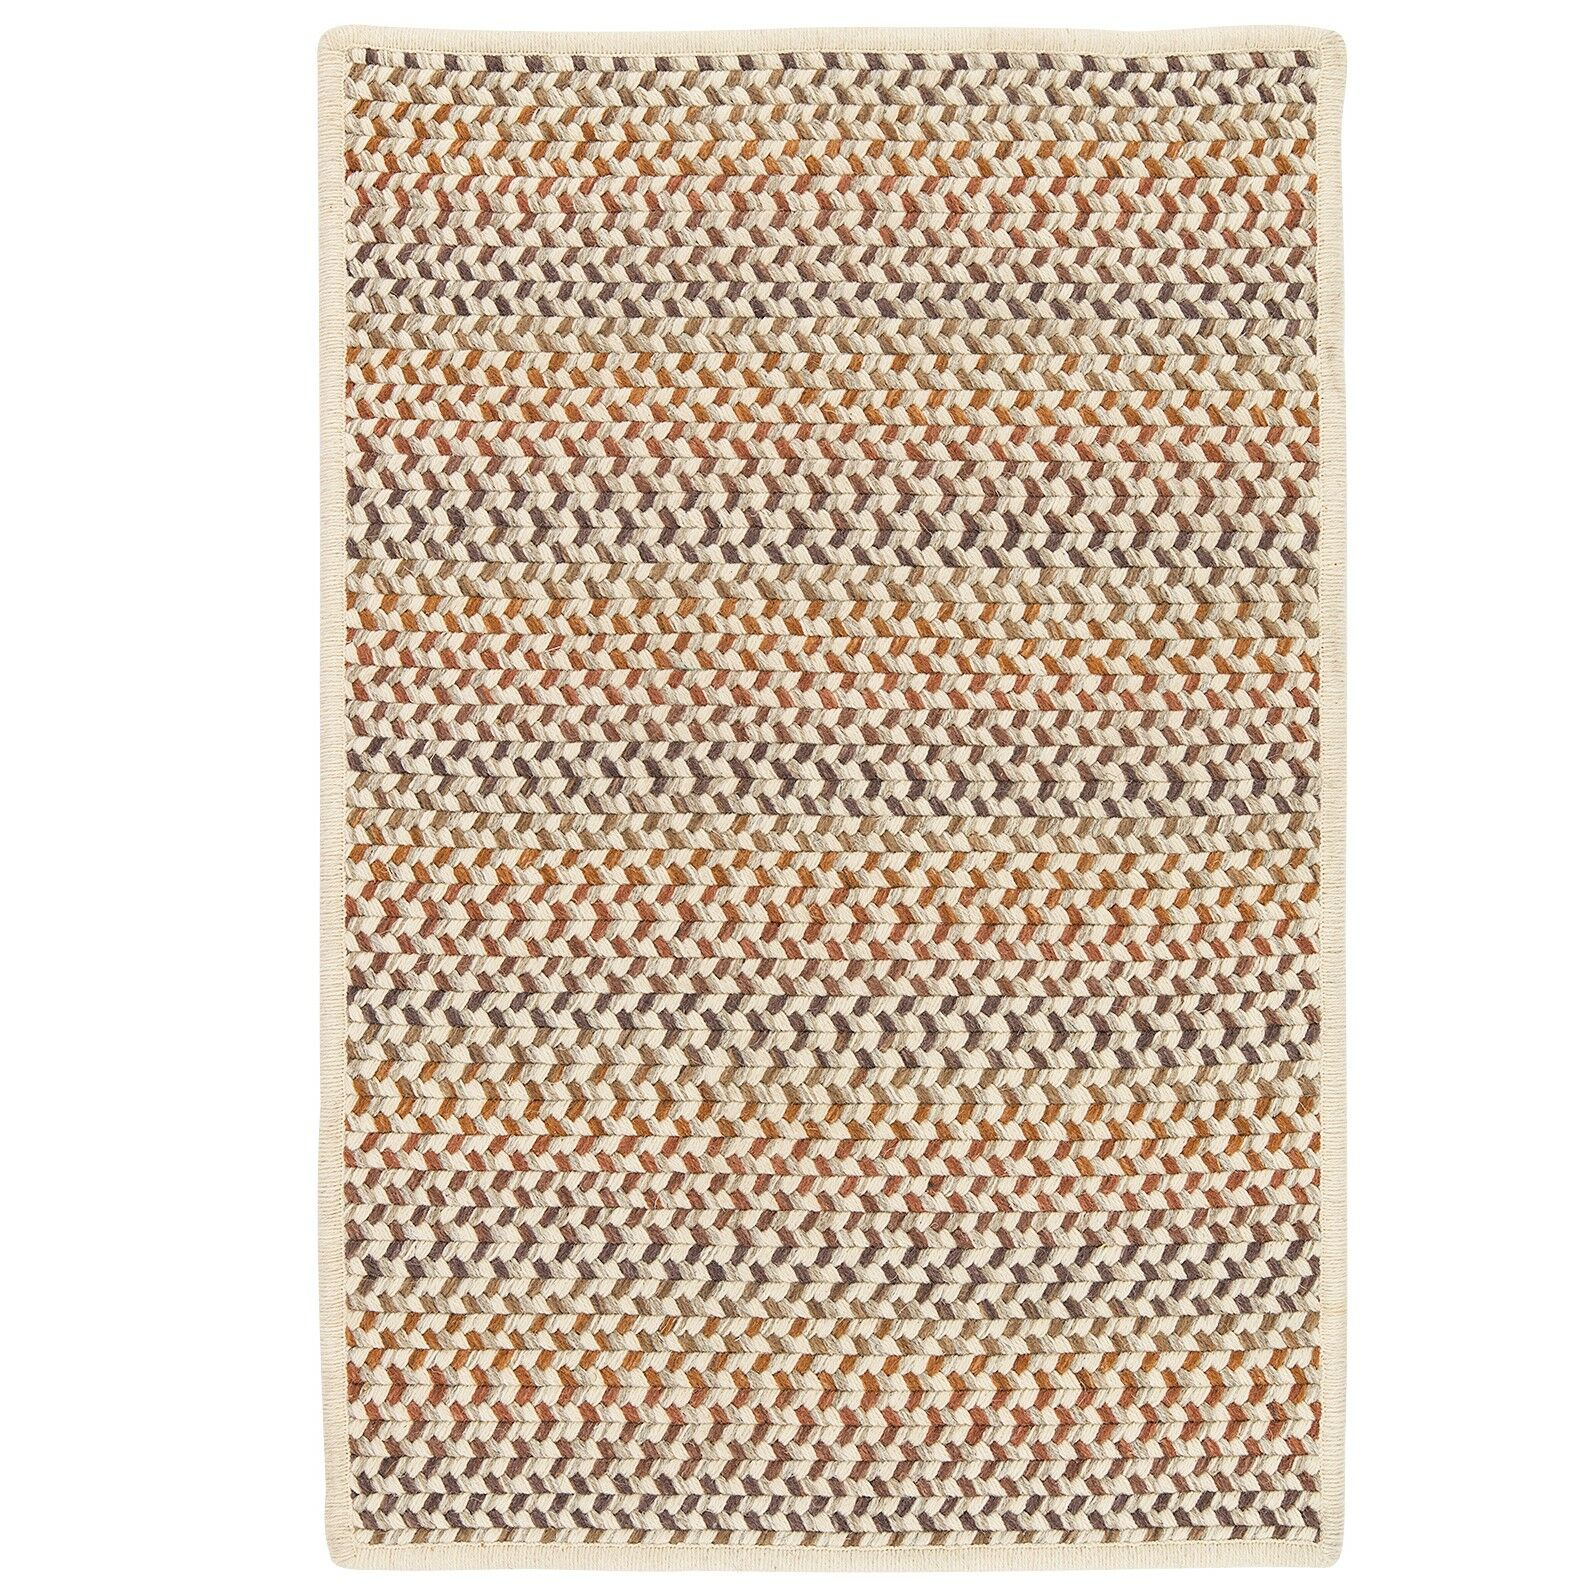 Arvie Hand-Woven Natural Wool Area Rug Rug Size: Rectangle 12' x 15'